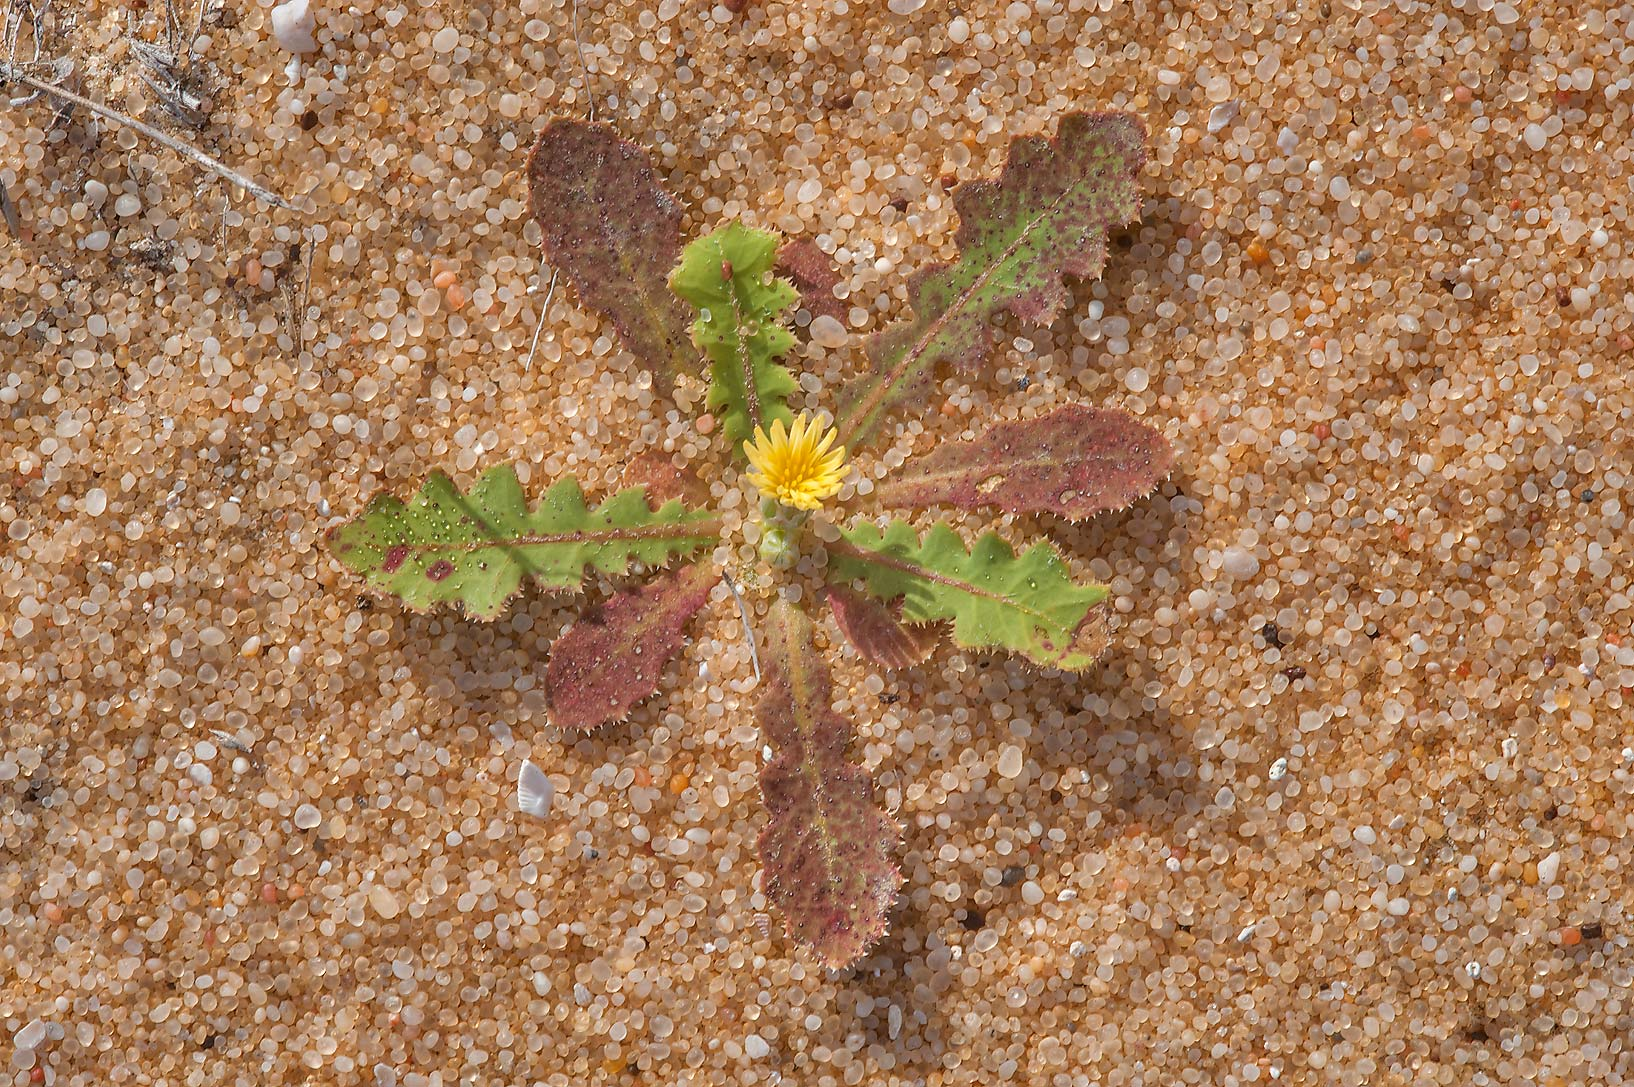 Rosette of leaves of Launaea capitata with a...Reserve near Abu Samra. Southern Qatar